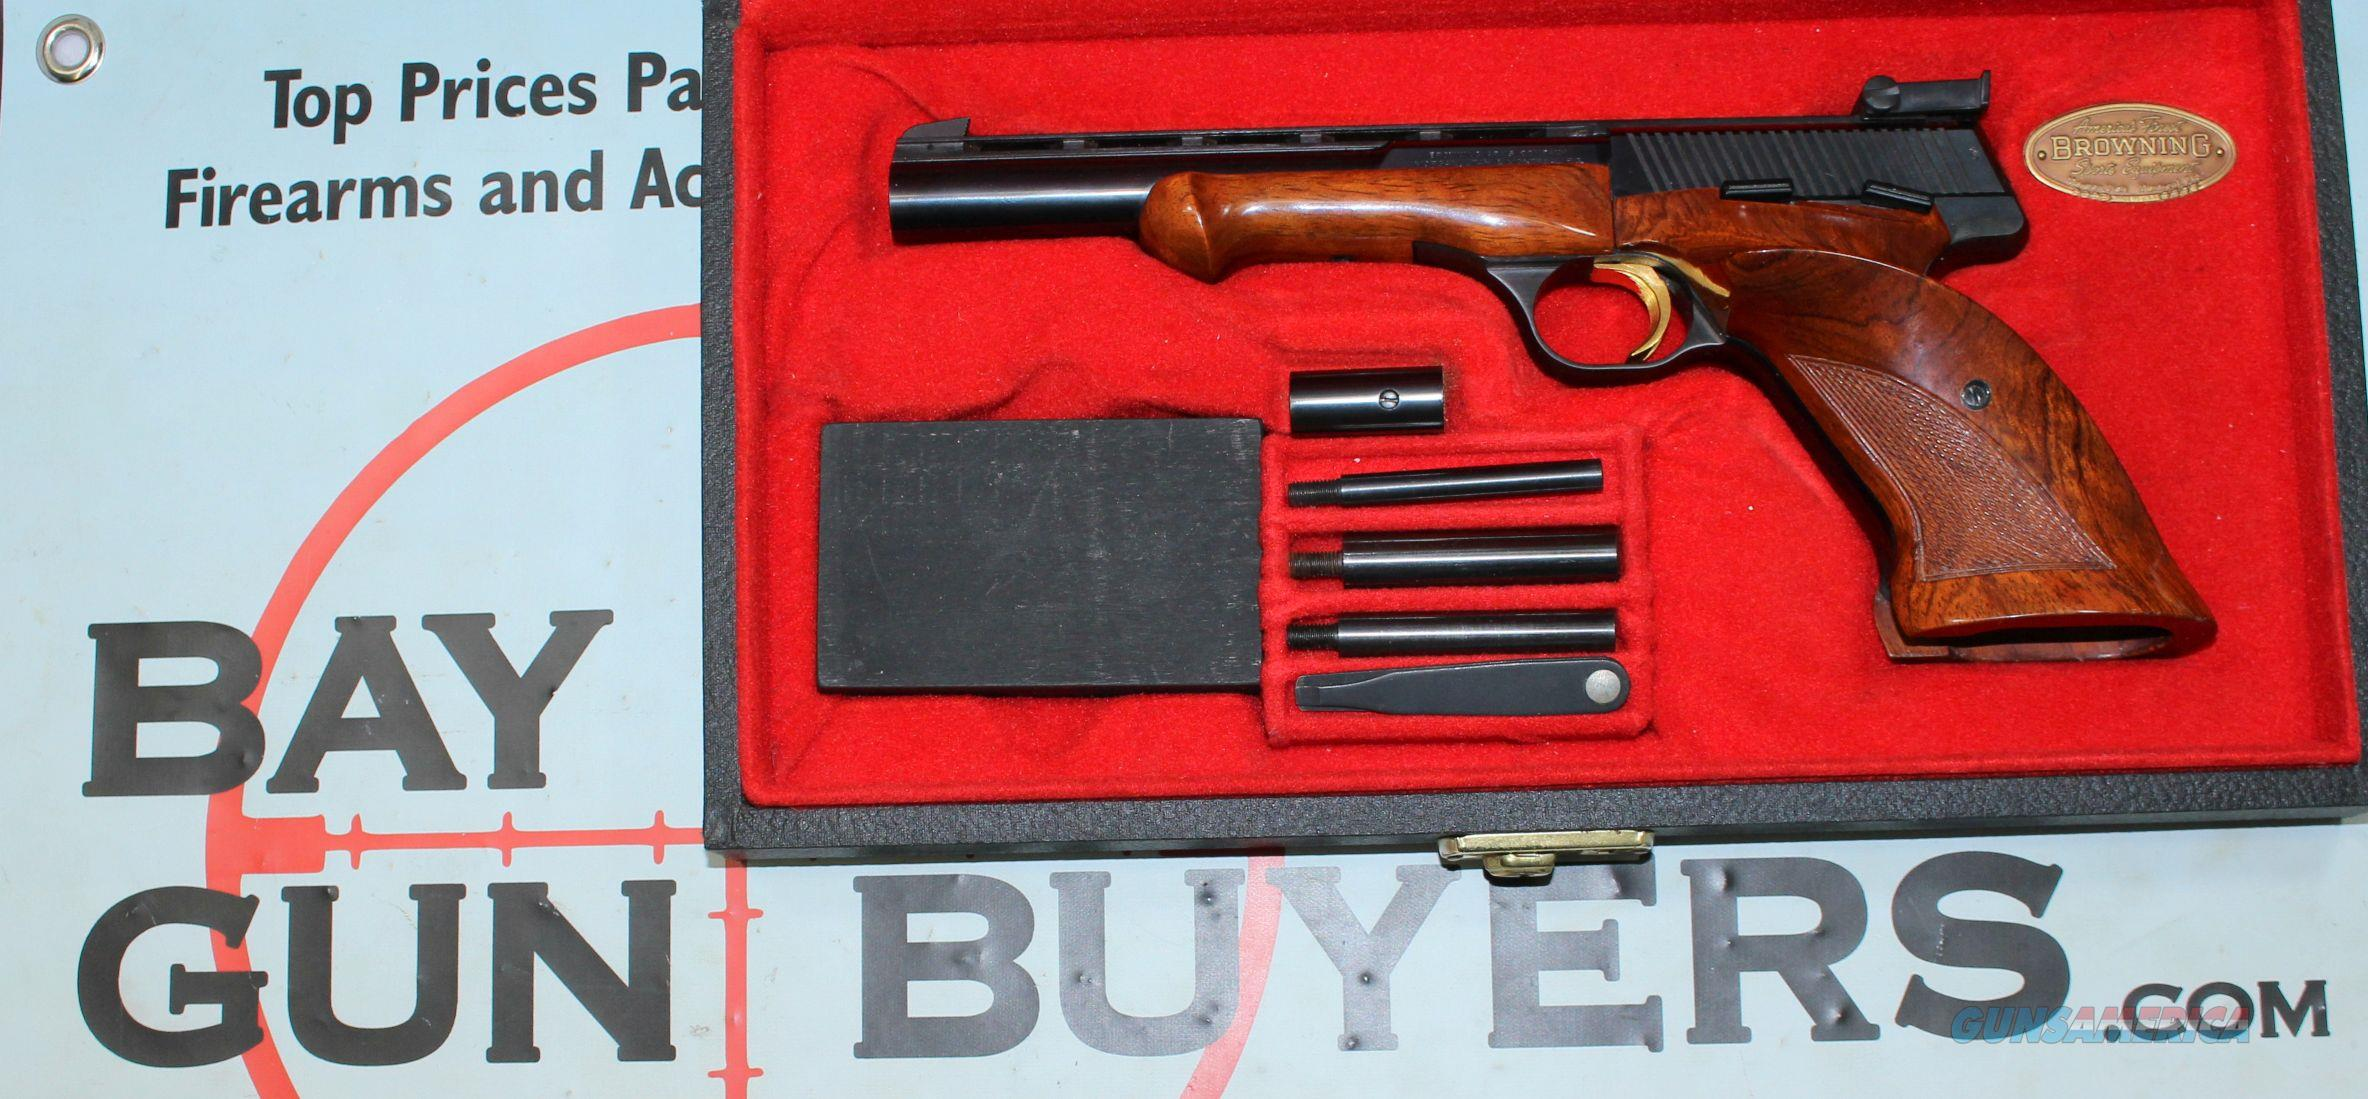 Browning Medalist .22LR Target Pistol with CASE, WEIGHTS & MANUAL  Guns > Pistols > Browning Pistols > Other Autos